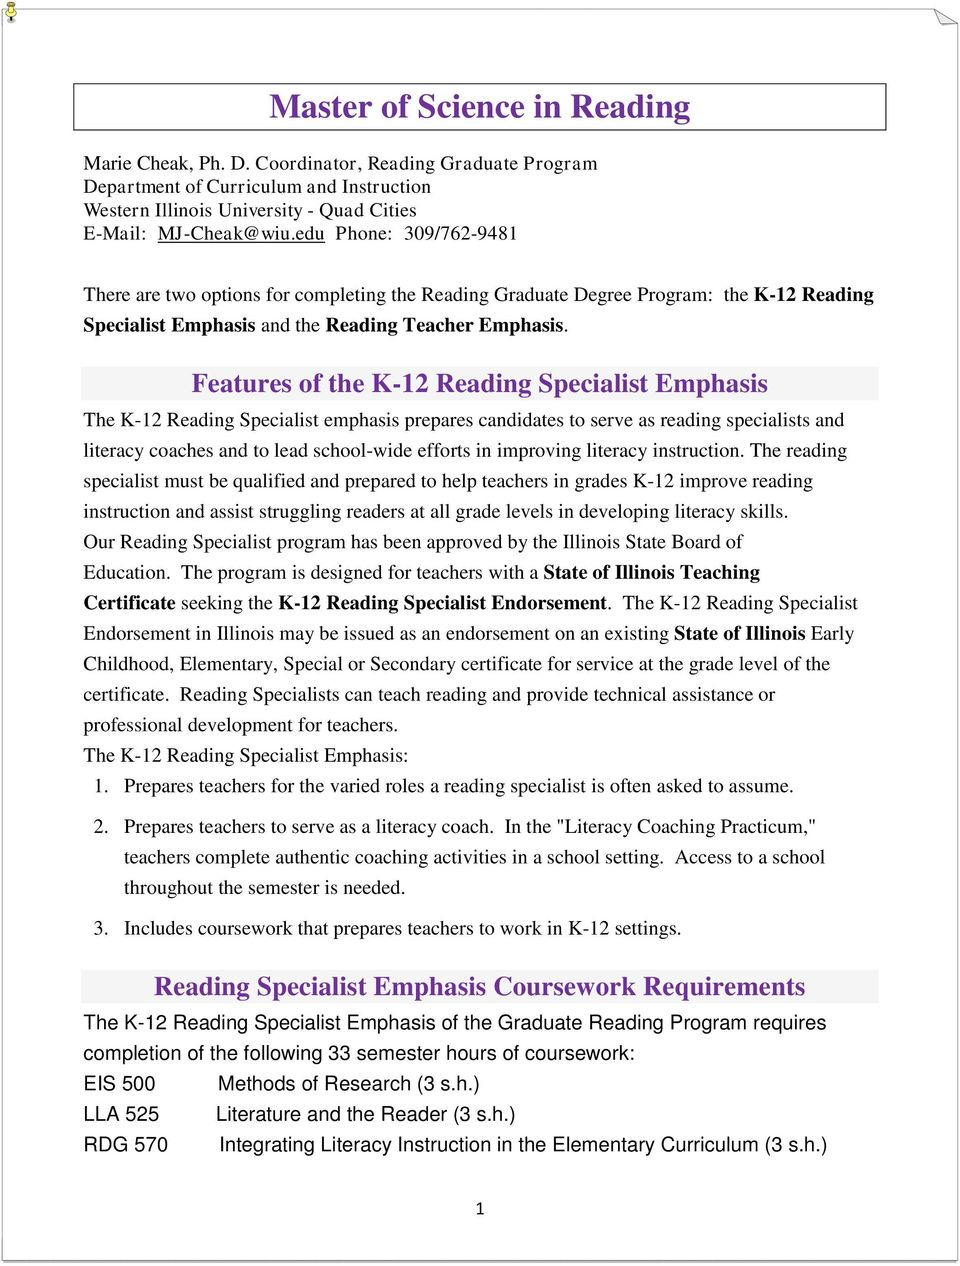 Features of the K-12 Reading Specialist Emphasis The K-12 Reading Specialist emphasis prepares candidates to serve as reading specialists and literacy coaches and to lead school-wide efforts in